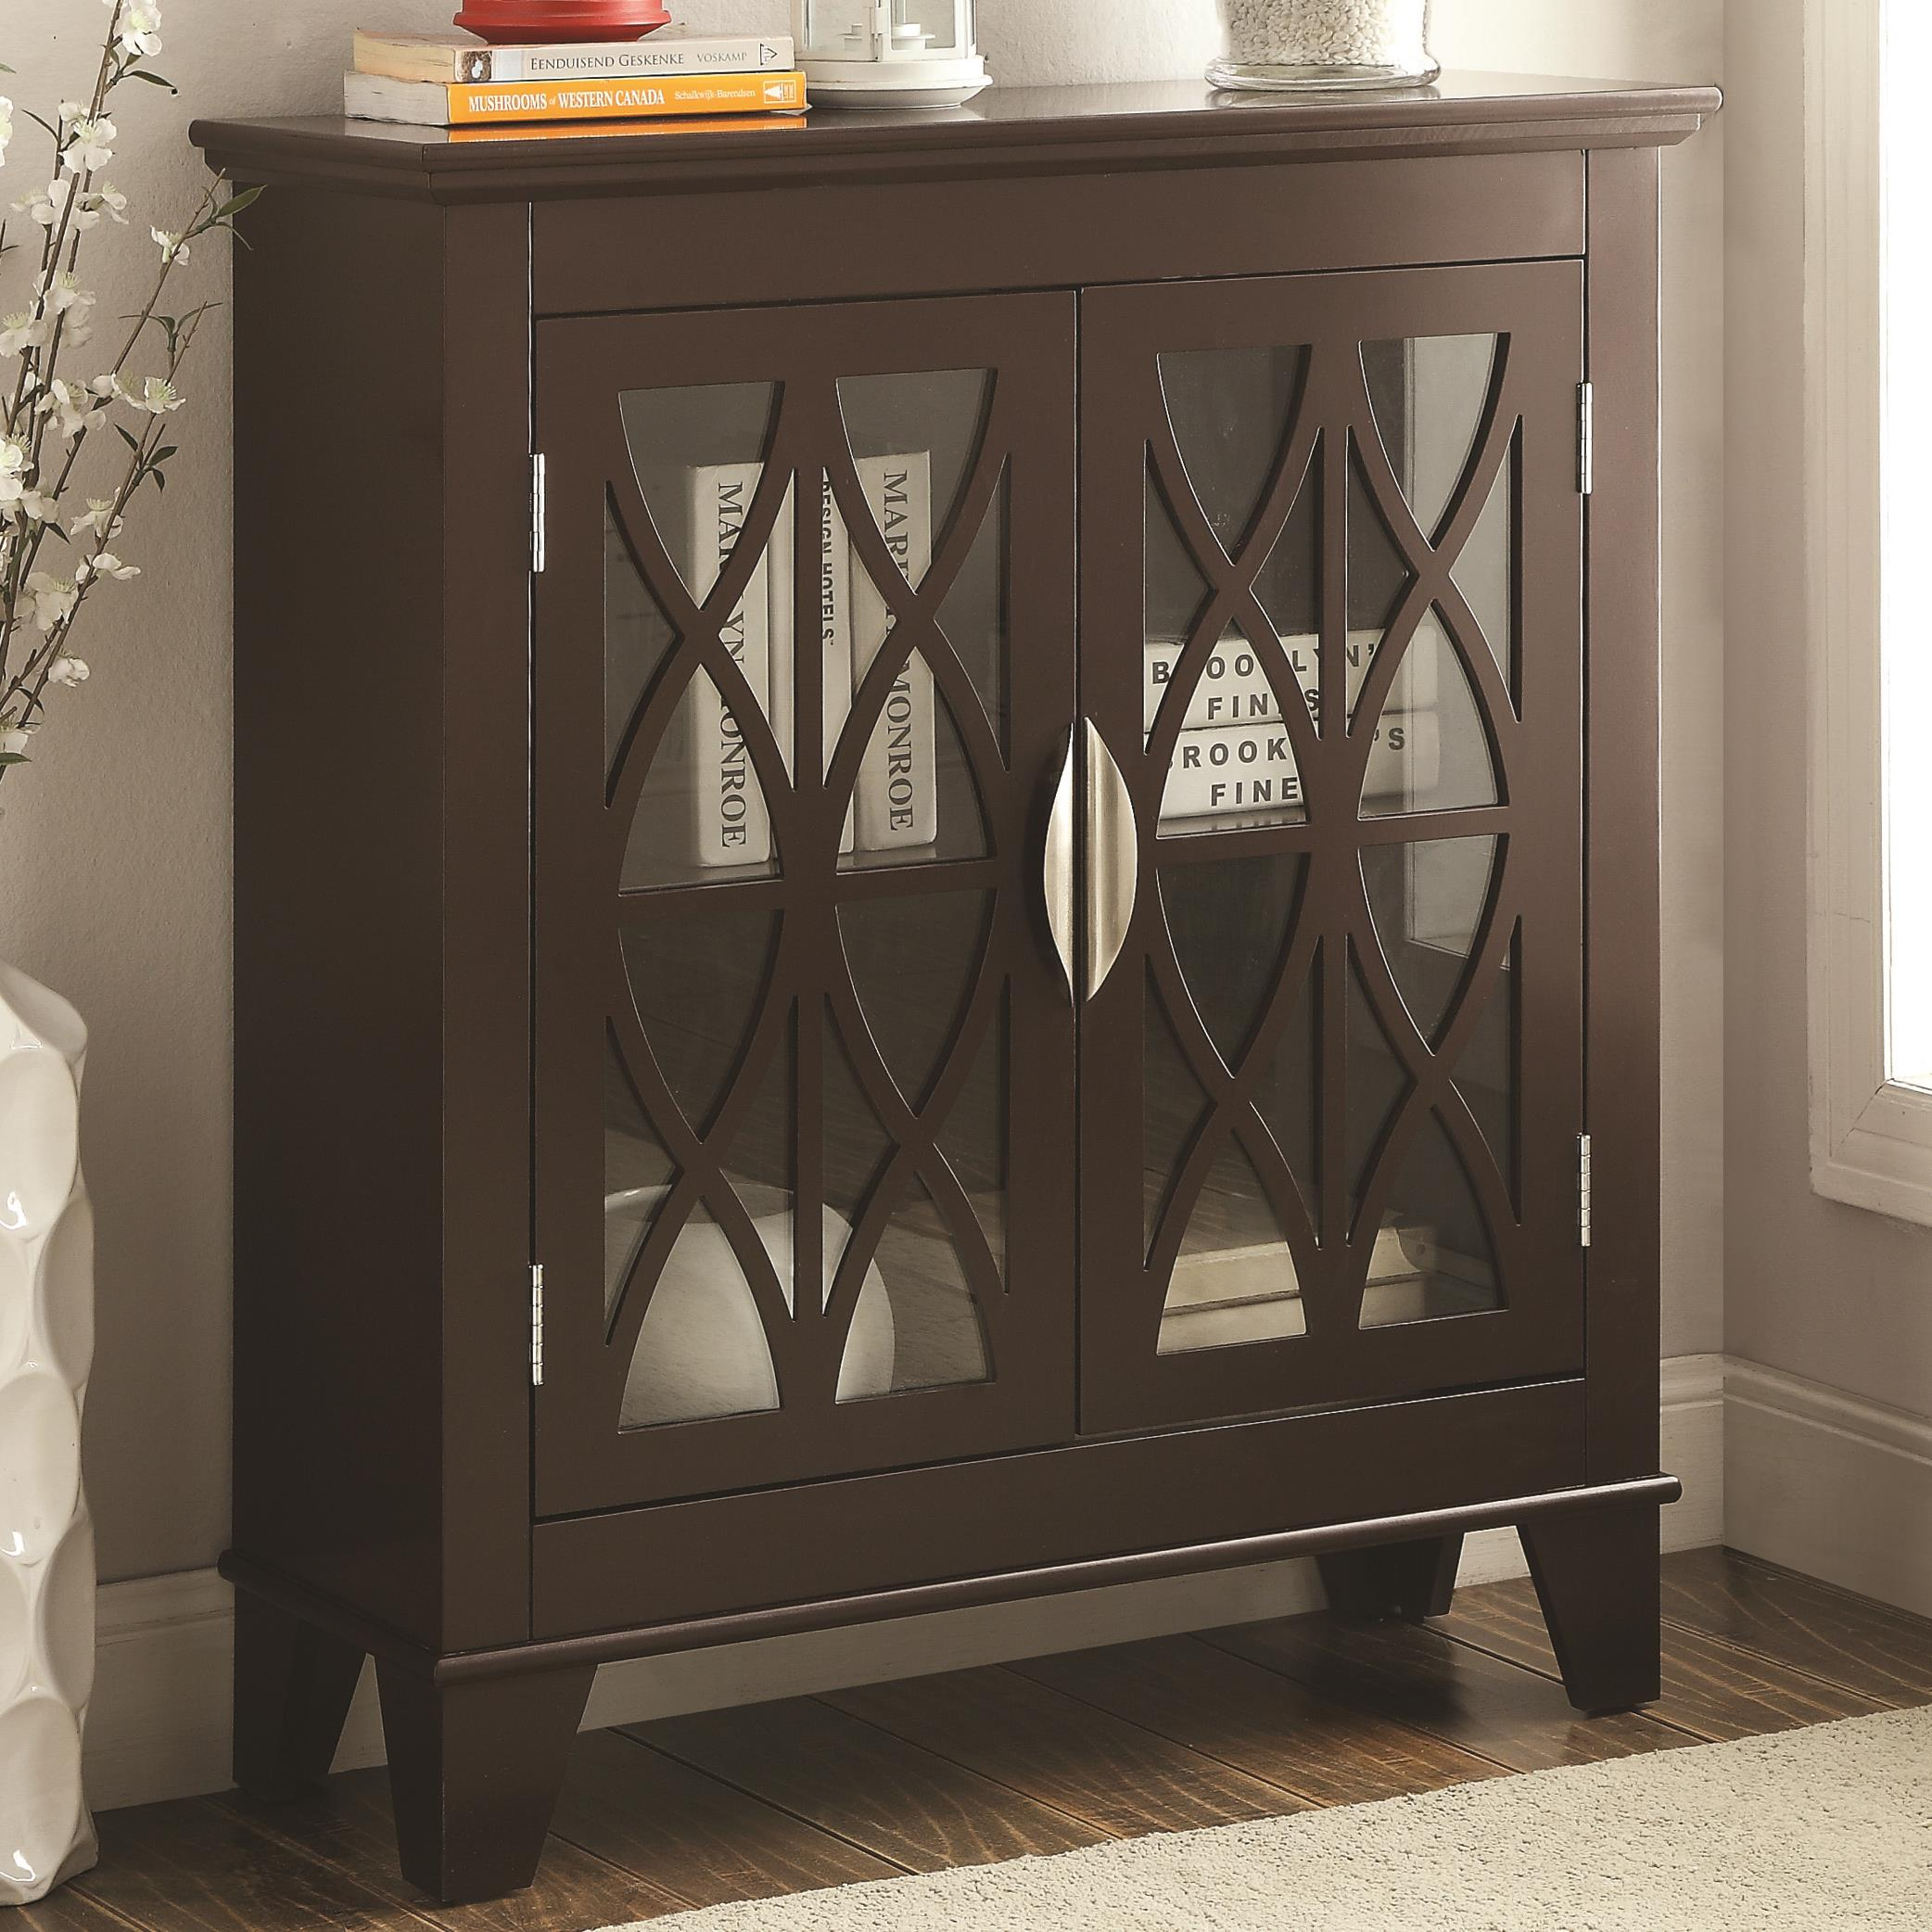 furniture more character with accent cabinets jeanettejames chest drawers threshold cabinet media narrow console painted chests tall skinny cabine storage large grey wall clock